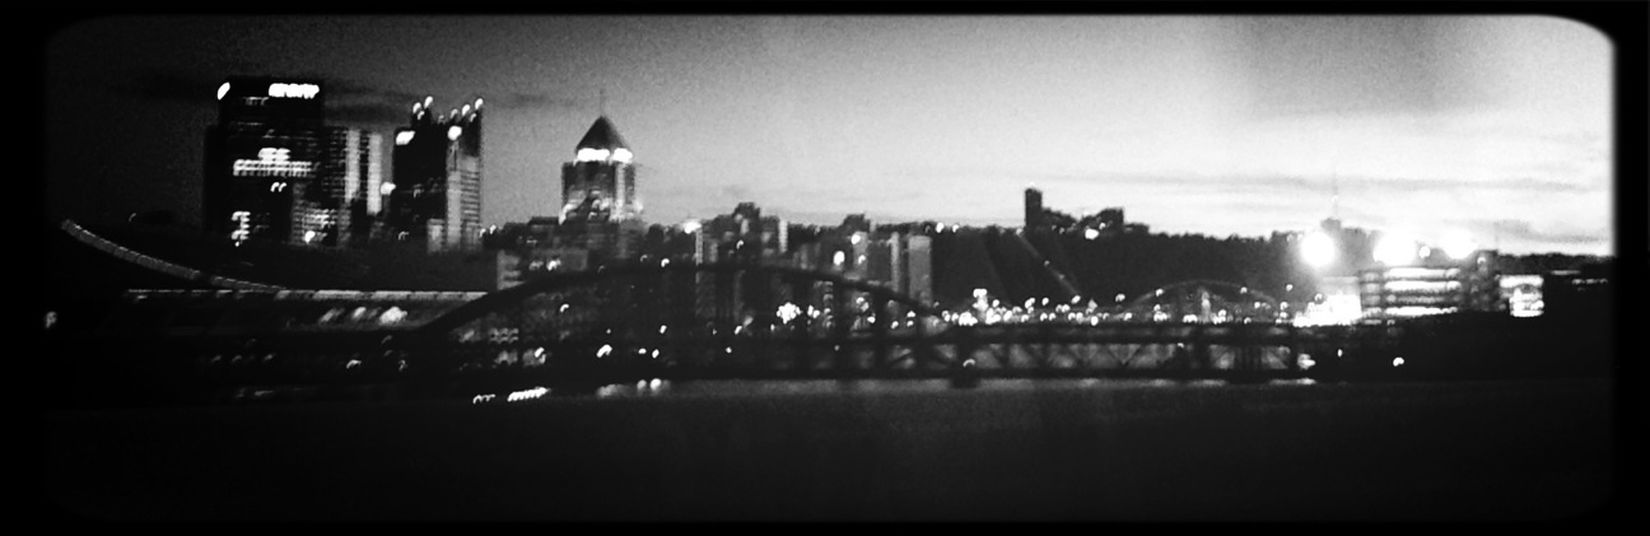 Driving Into The City